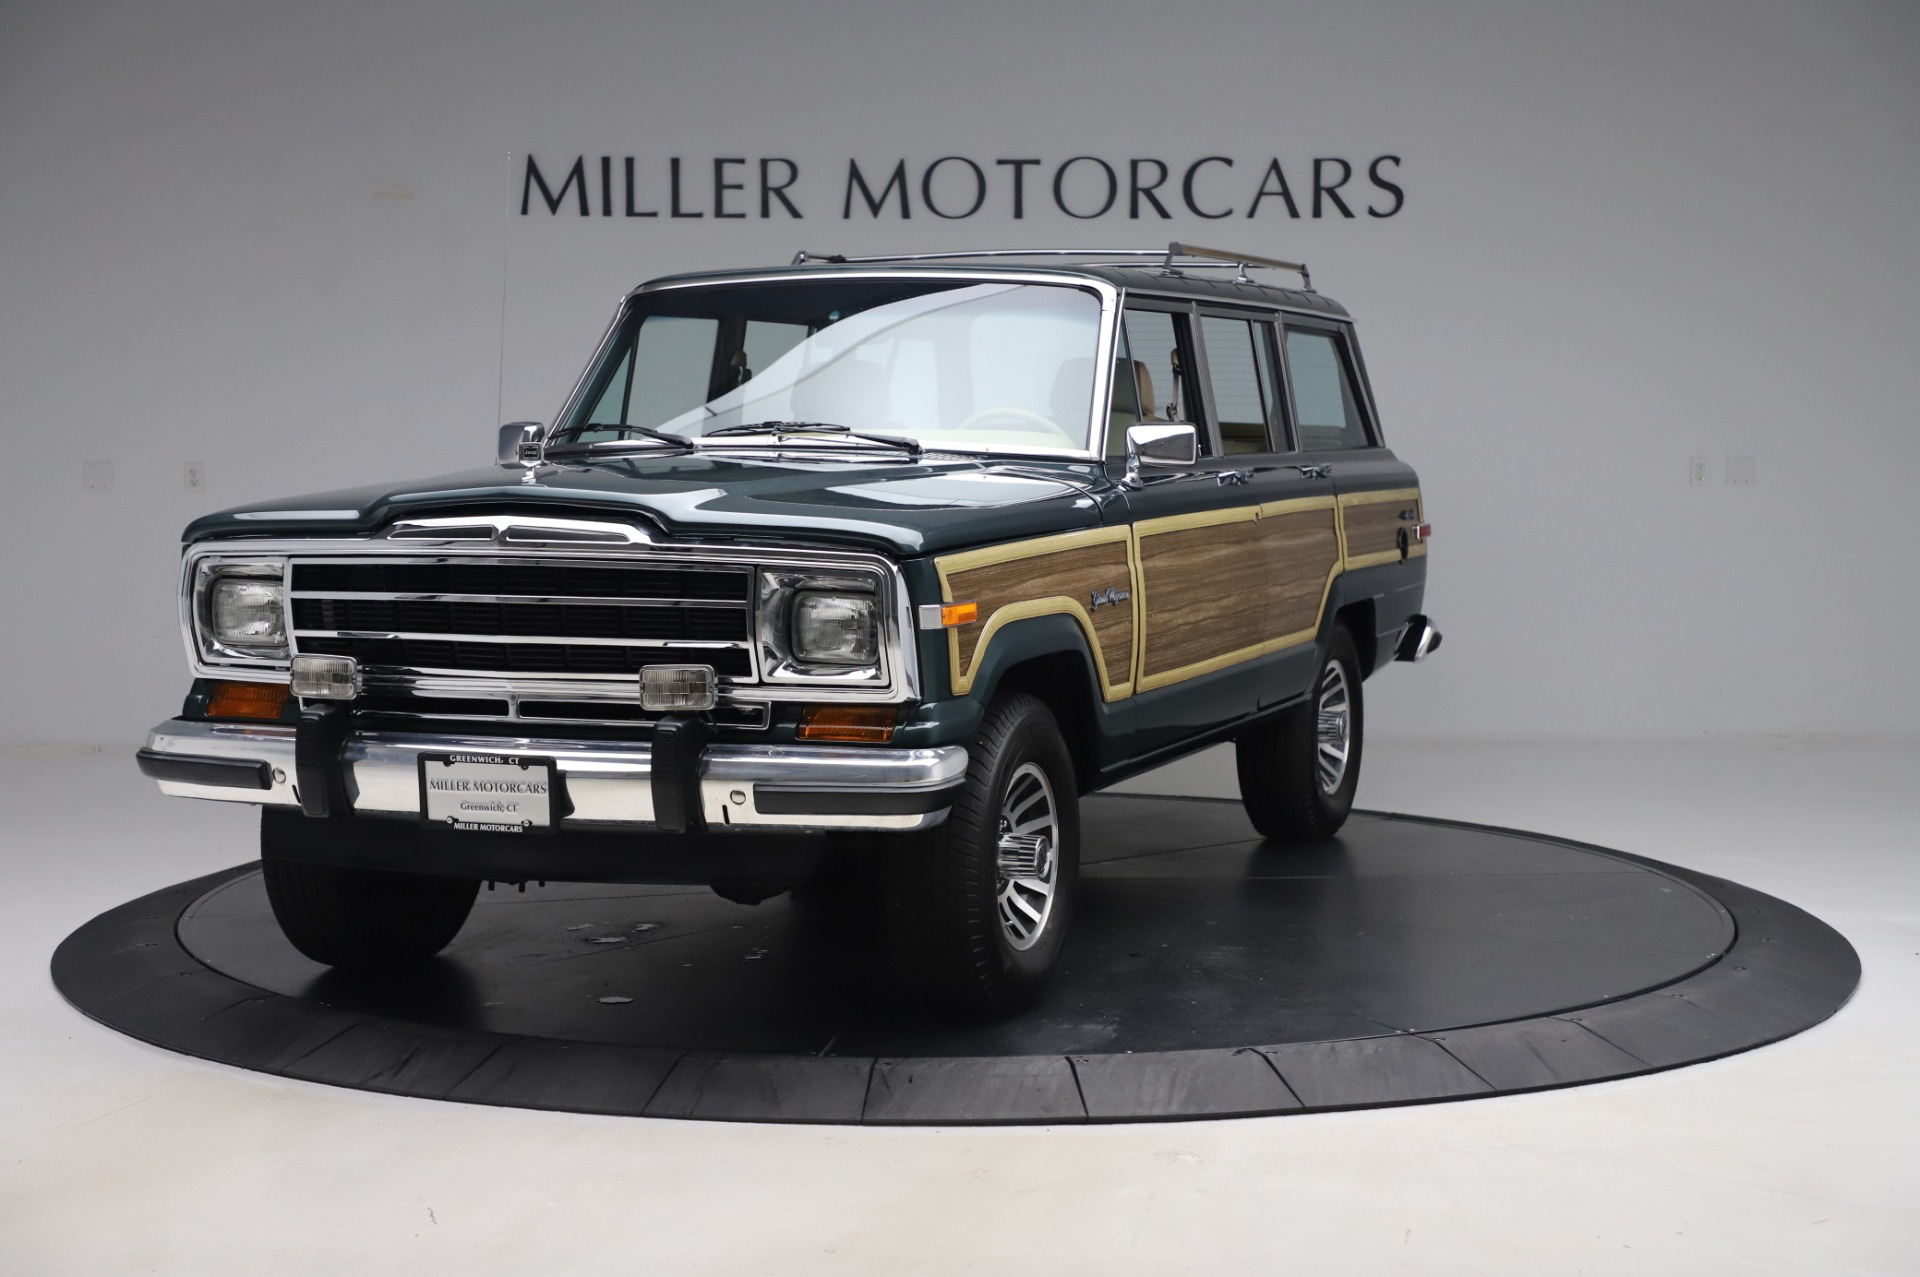 Used 1991 Jeep Grand Wagoneer for sale $89,900 at Pagani of Greenwich in Greenwich CT 06830 1